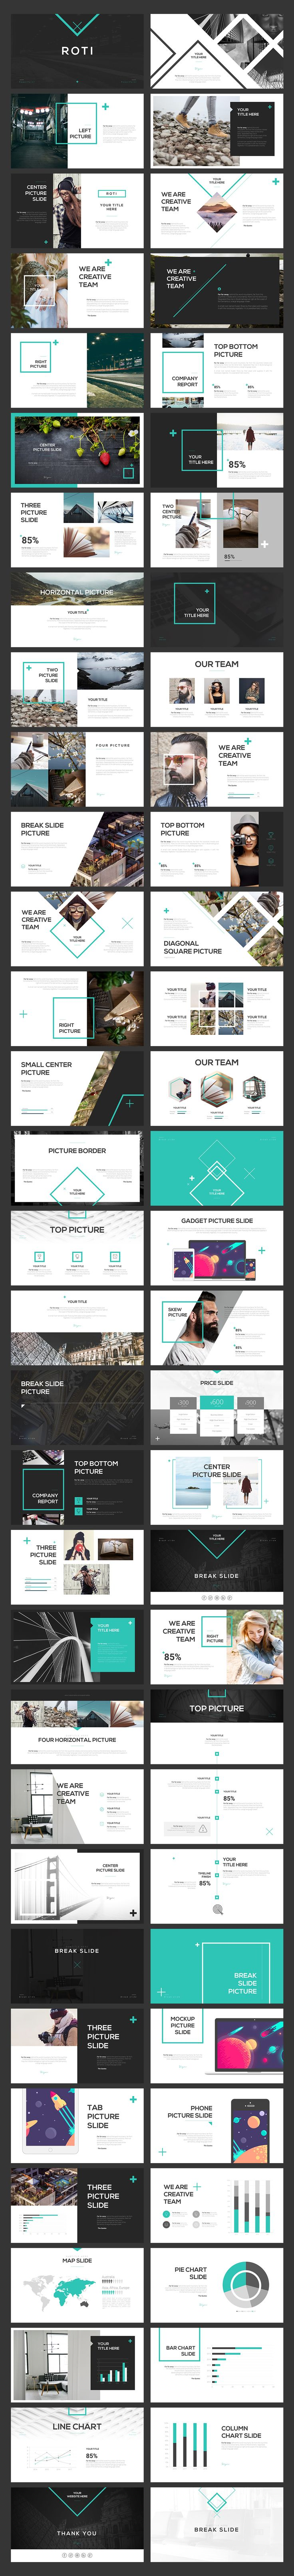 ROTI Keynote Template by Angkalimabelas on @creativemarket                                                                                                                                                                                 More